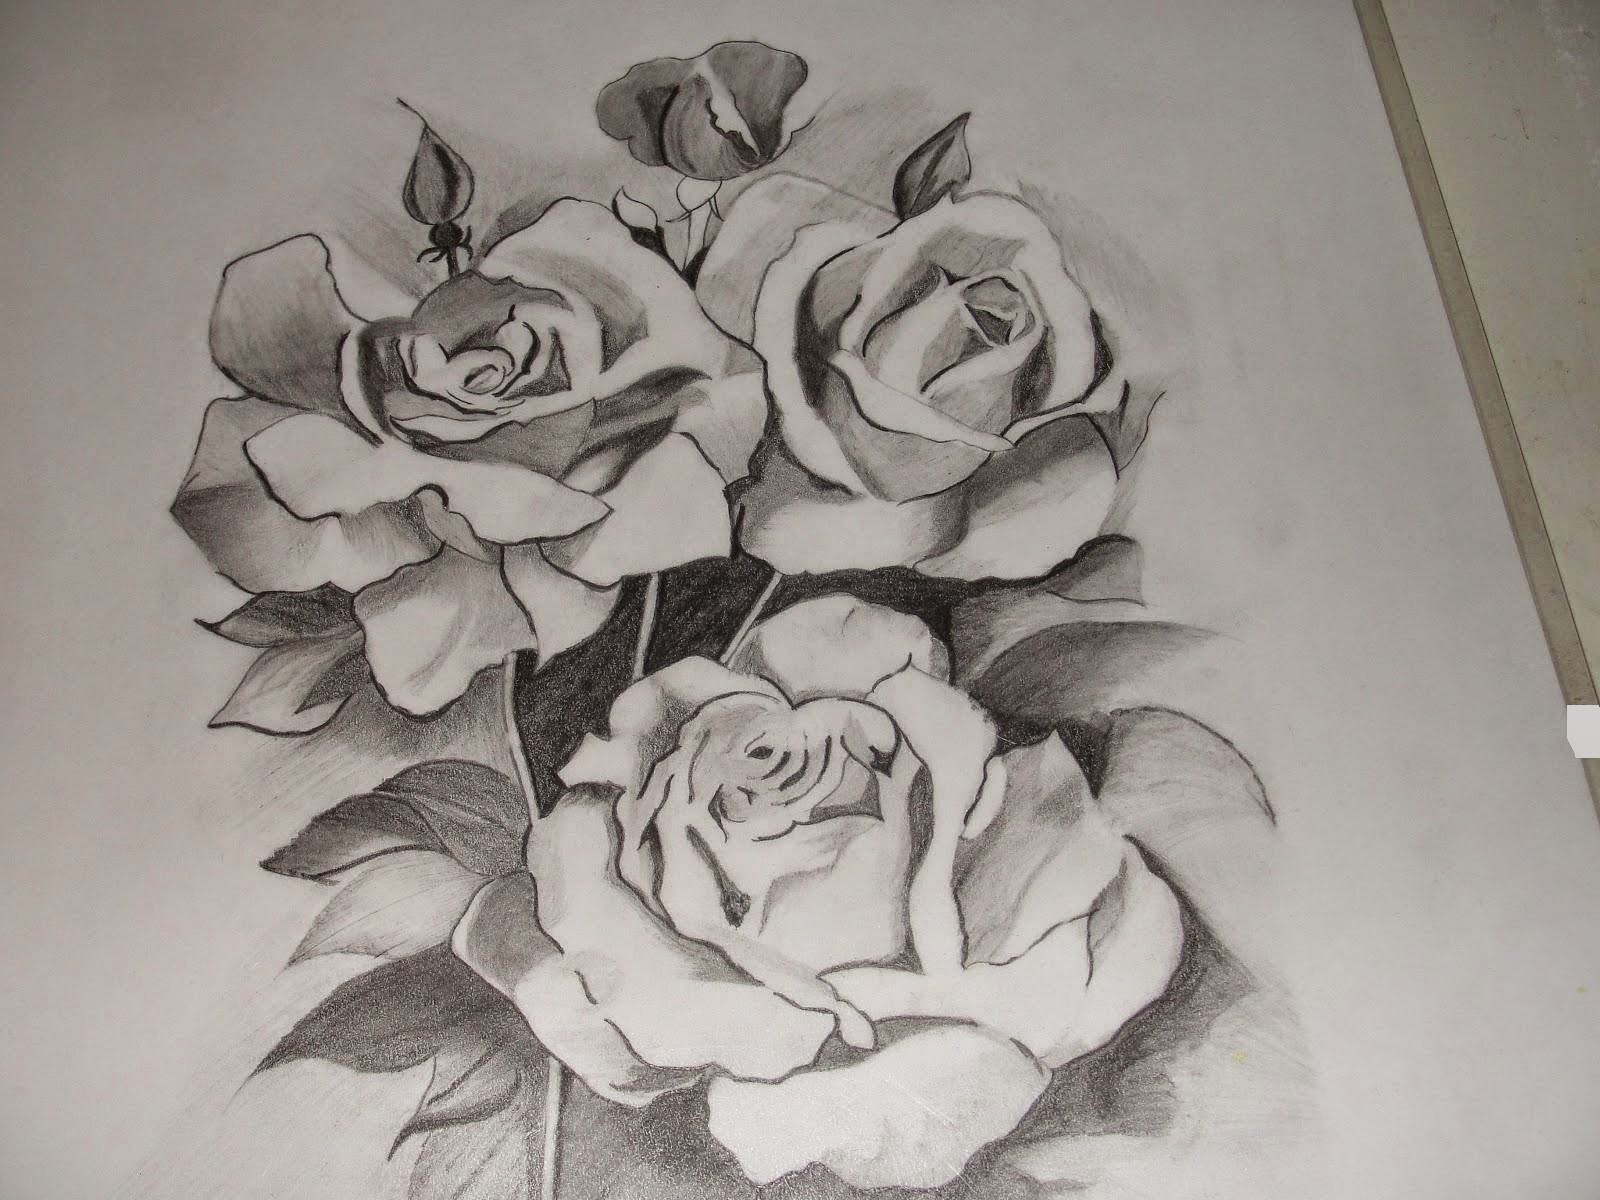 It's just a picture of Clean Beautiful Rose Drawing